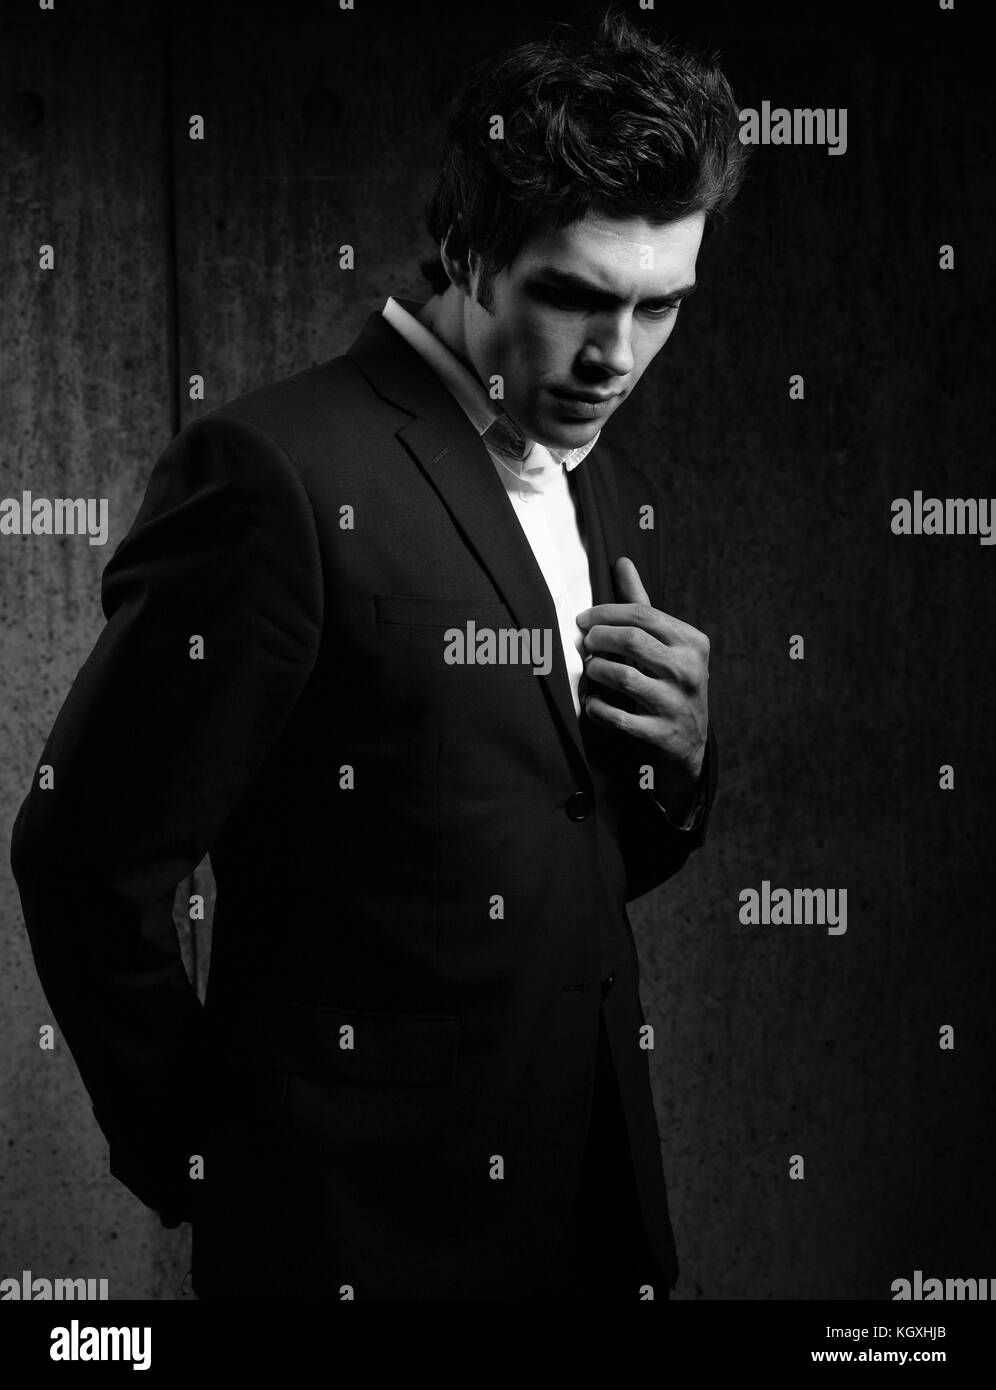 ff92c881 Charismatic handsome male model posing and looking down in fashion suit and white  style shirt on dark shadow background. Closeup portrait. Black and w